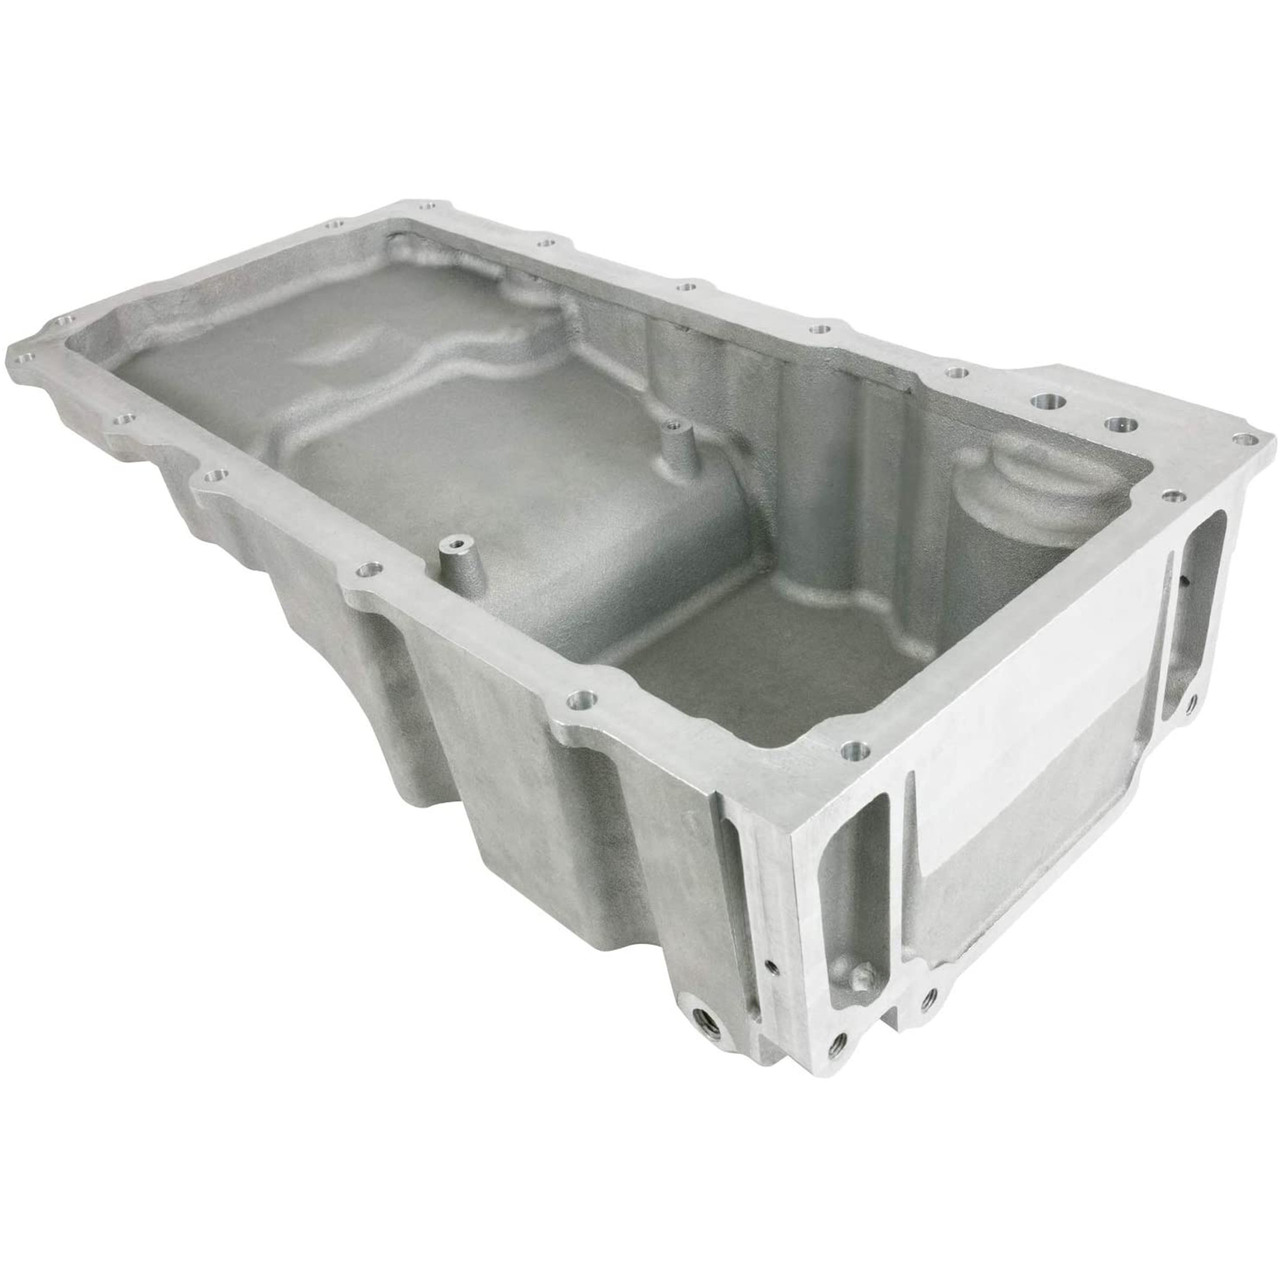 A-Team Performance LS Aluminum Rear Sump Low-Profile Retro-Fit Oil Pan for Chevrolet